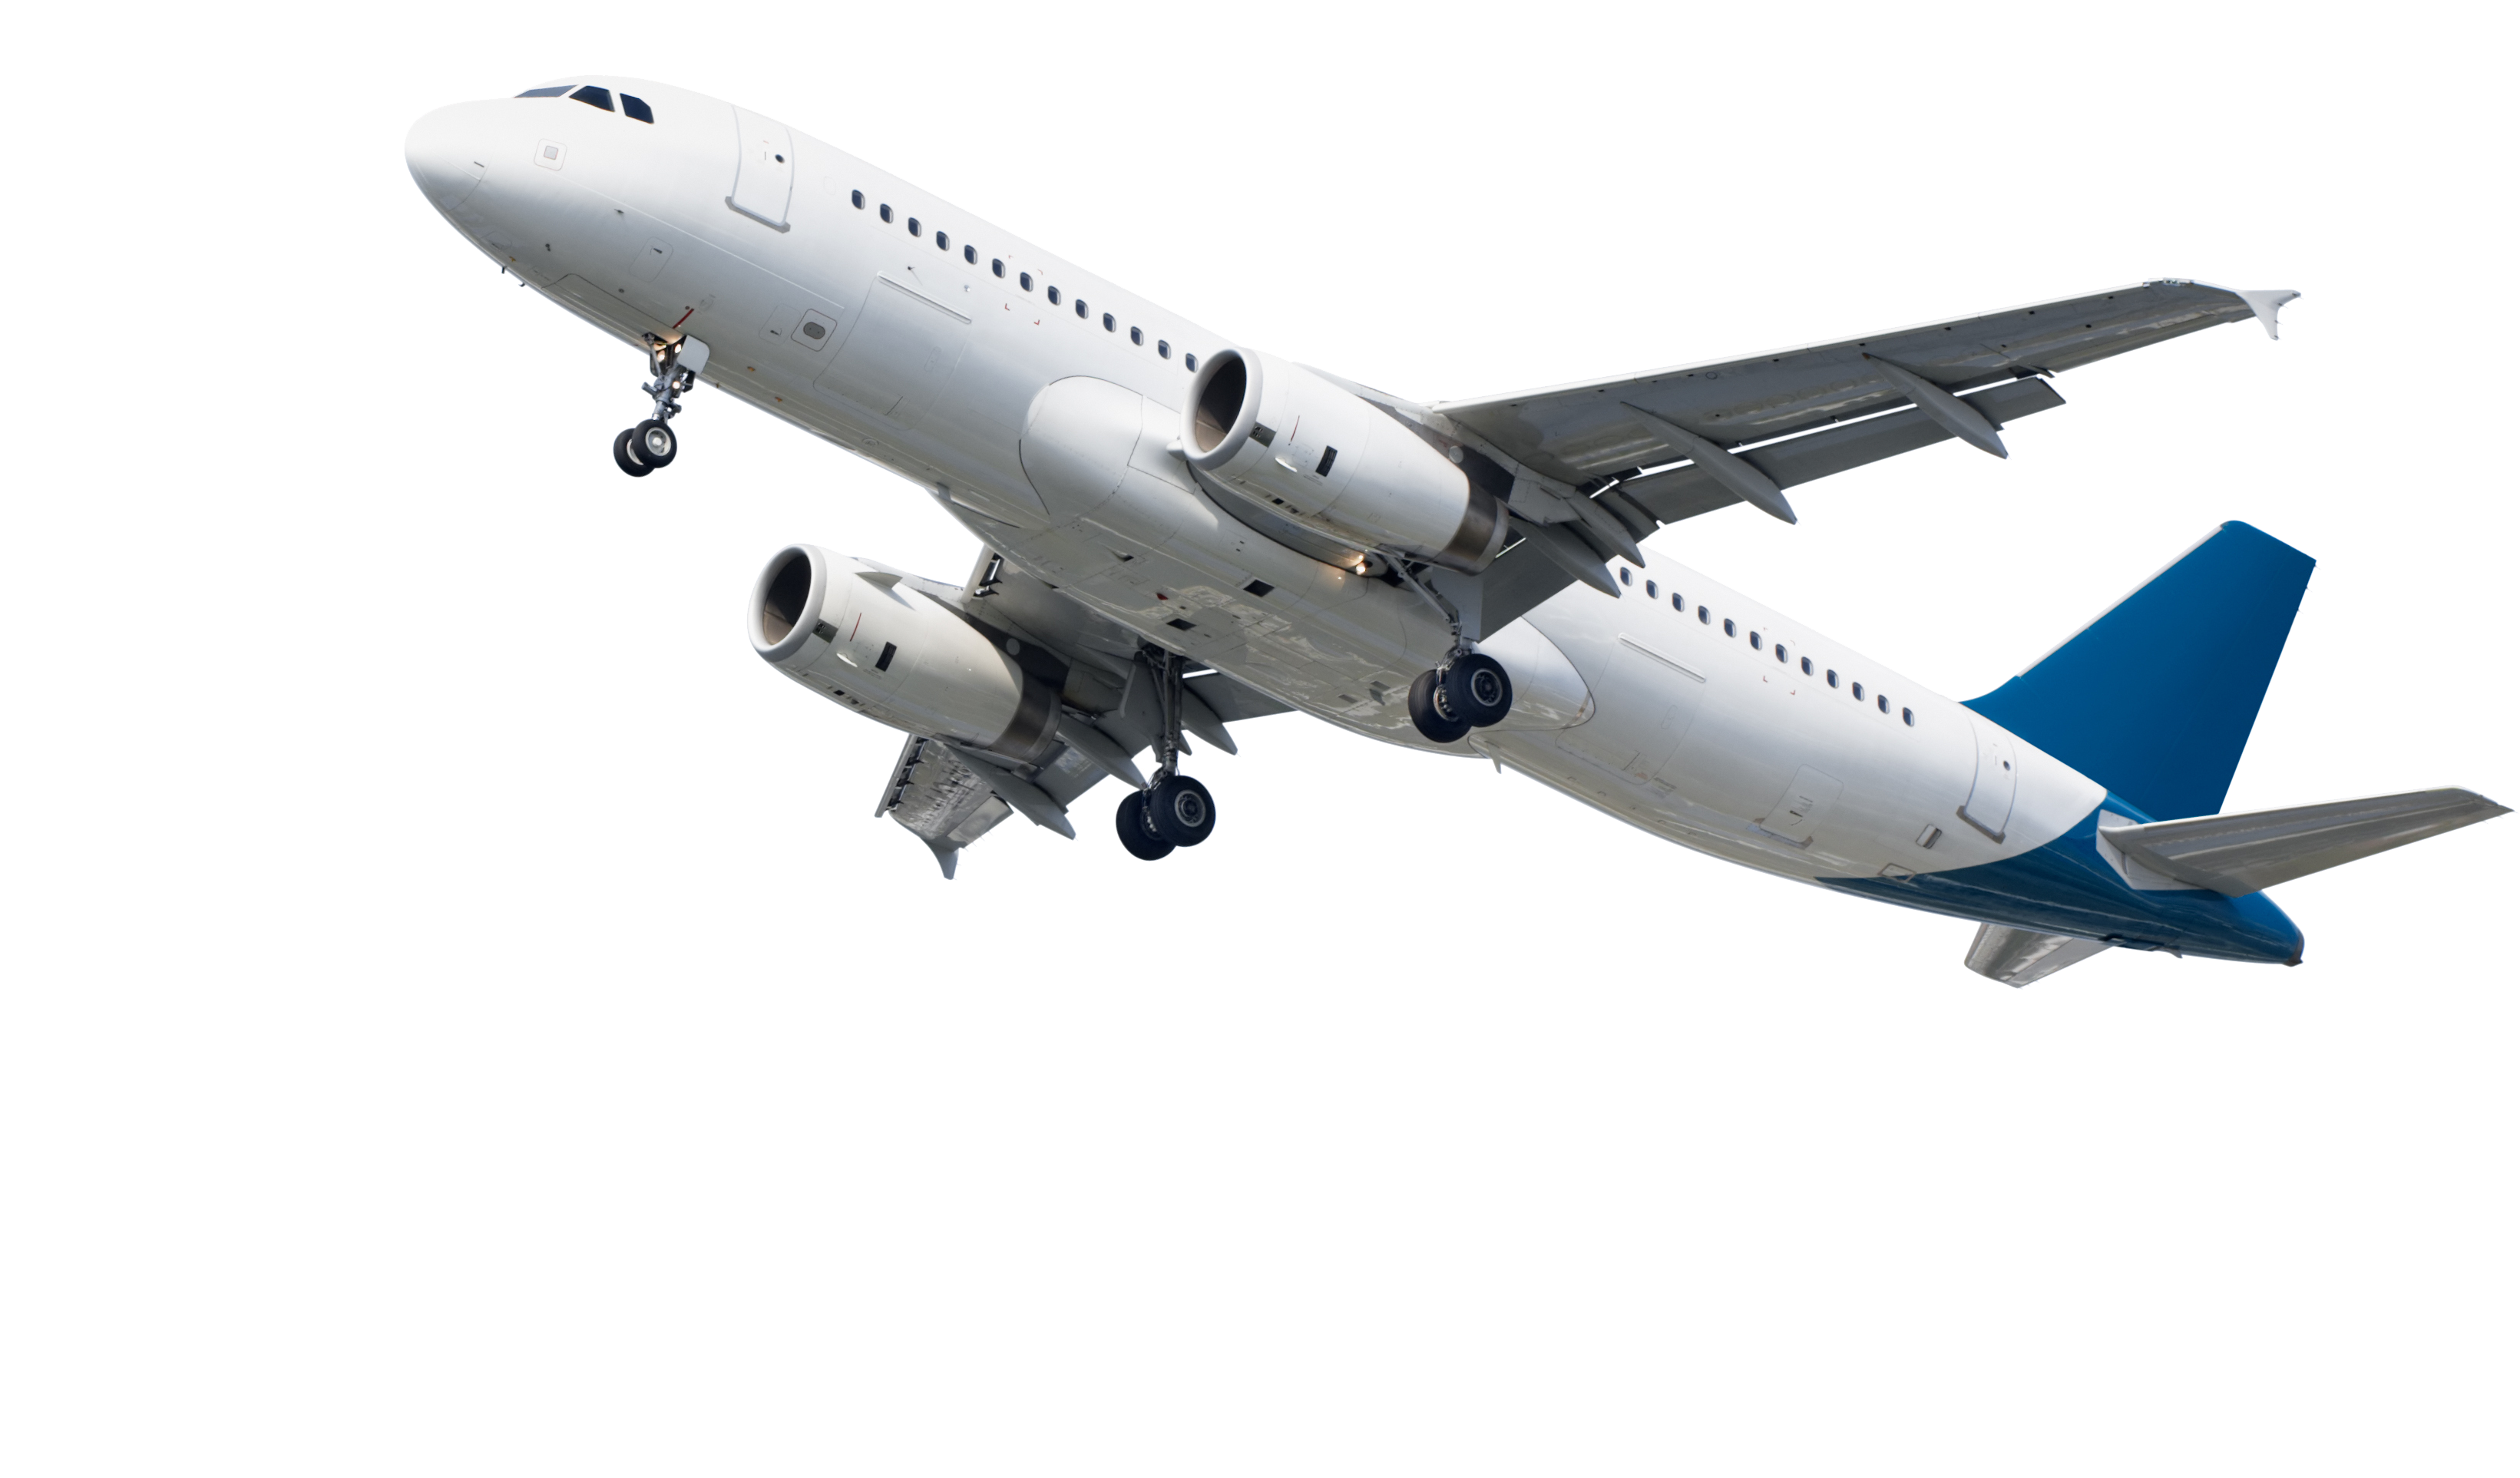 Plane png. Airplane free download mart